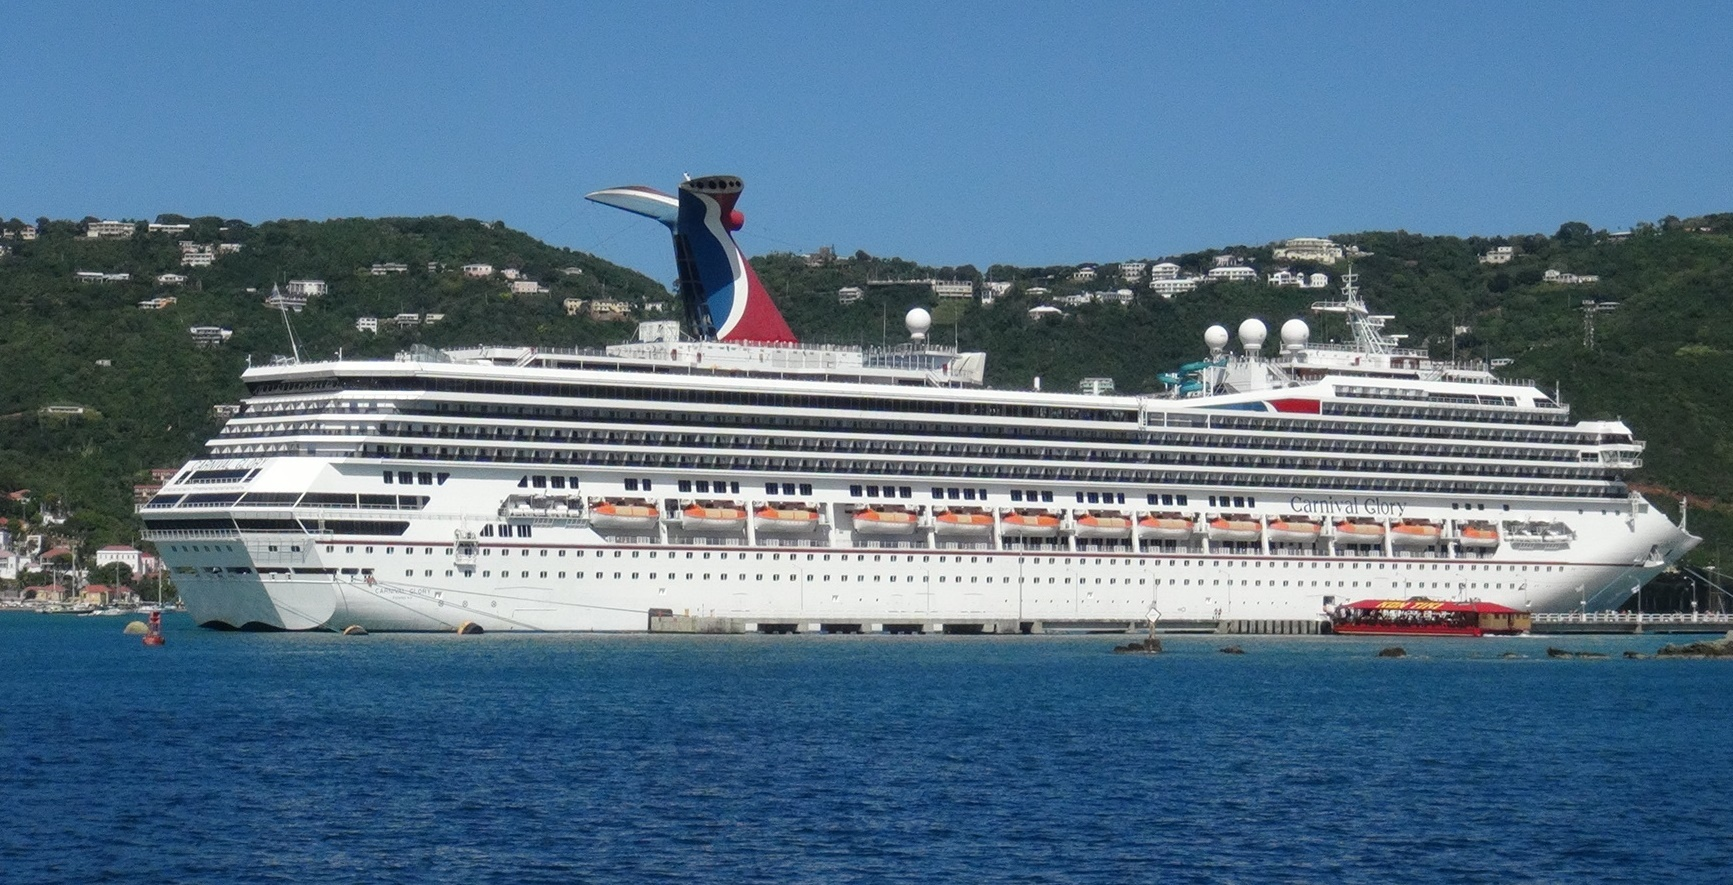 Carnival Glory Cruise Ship Profile on